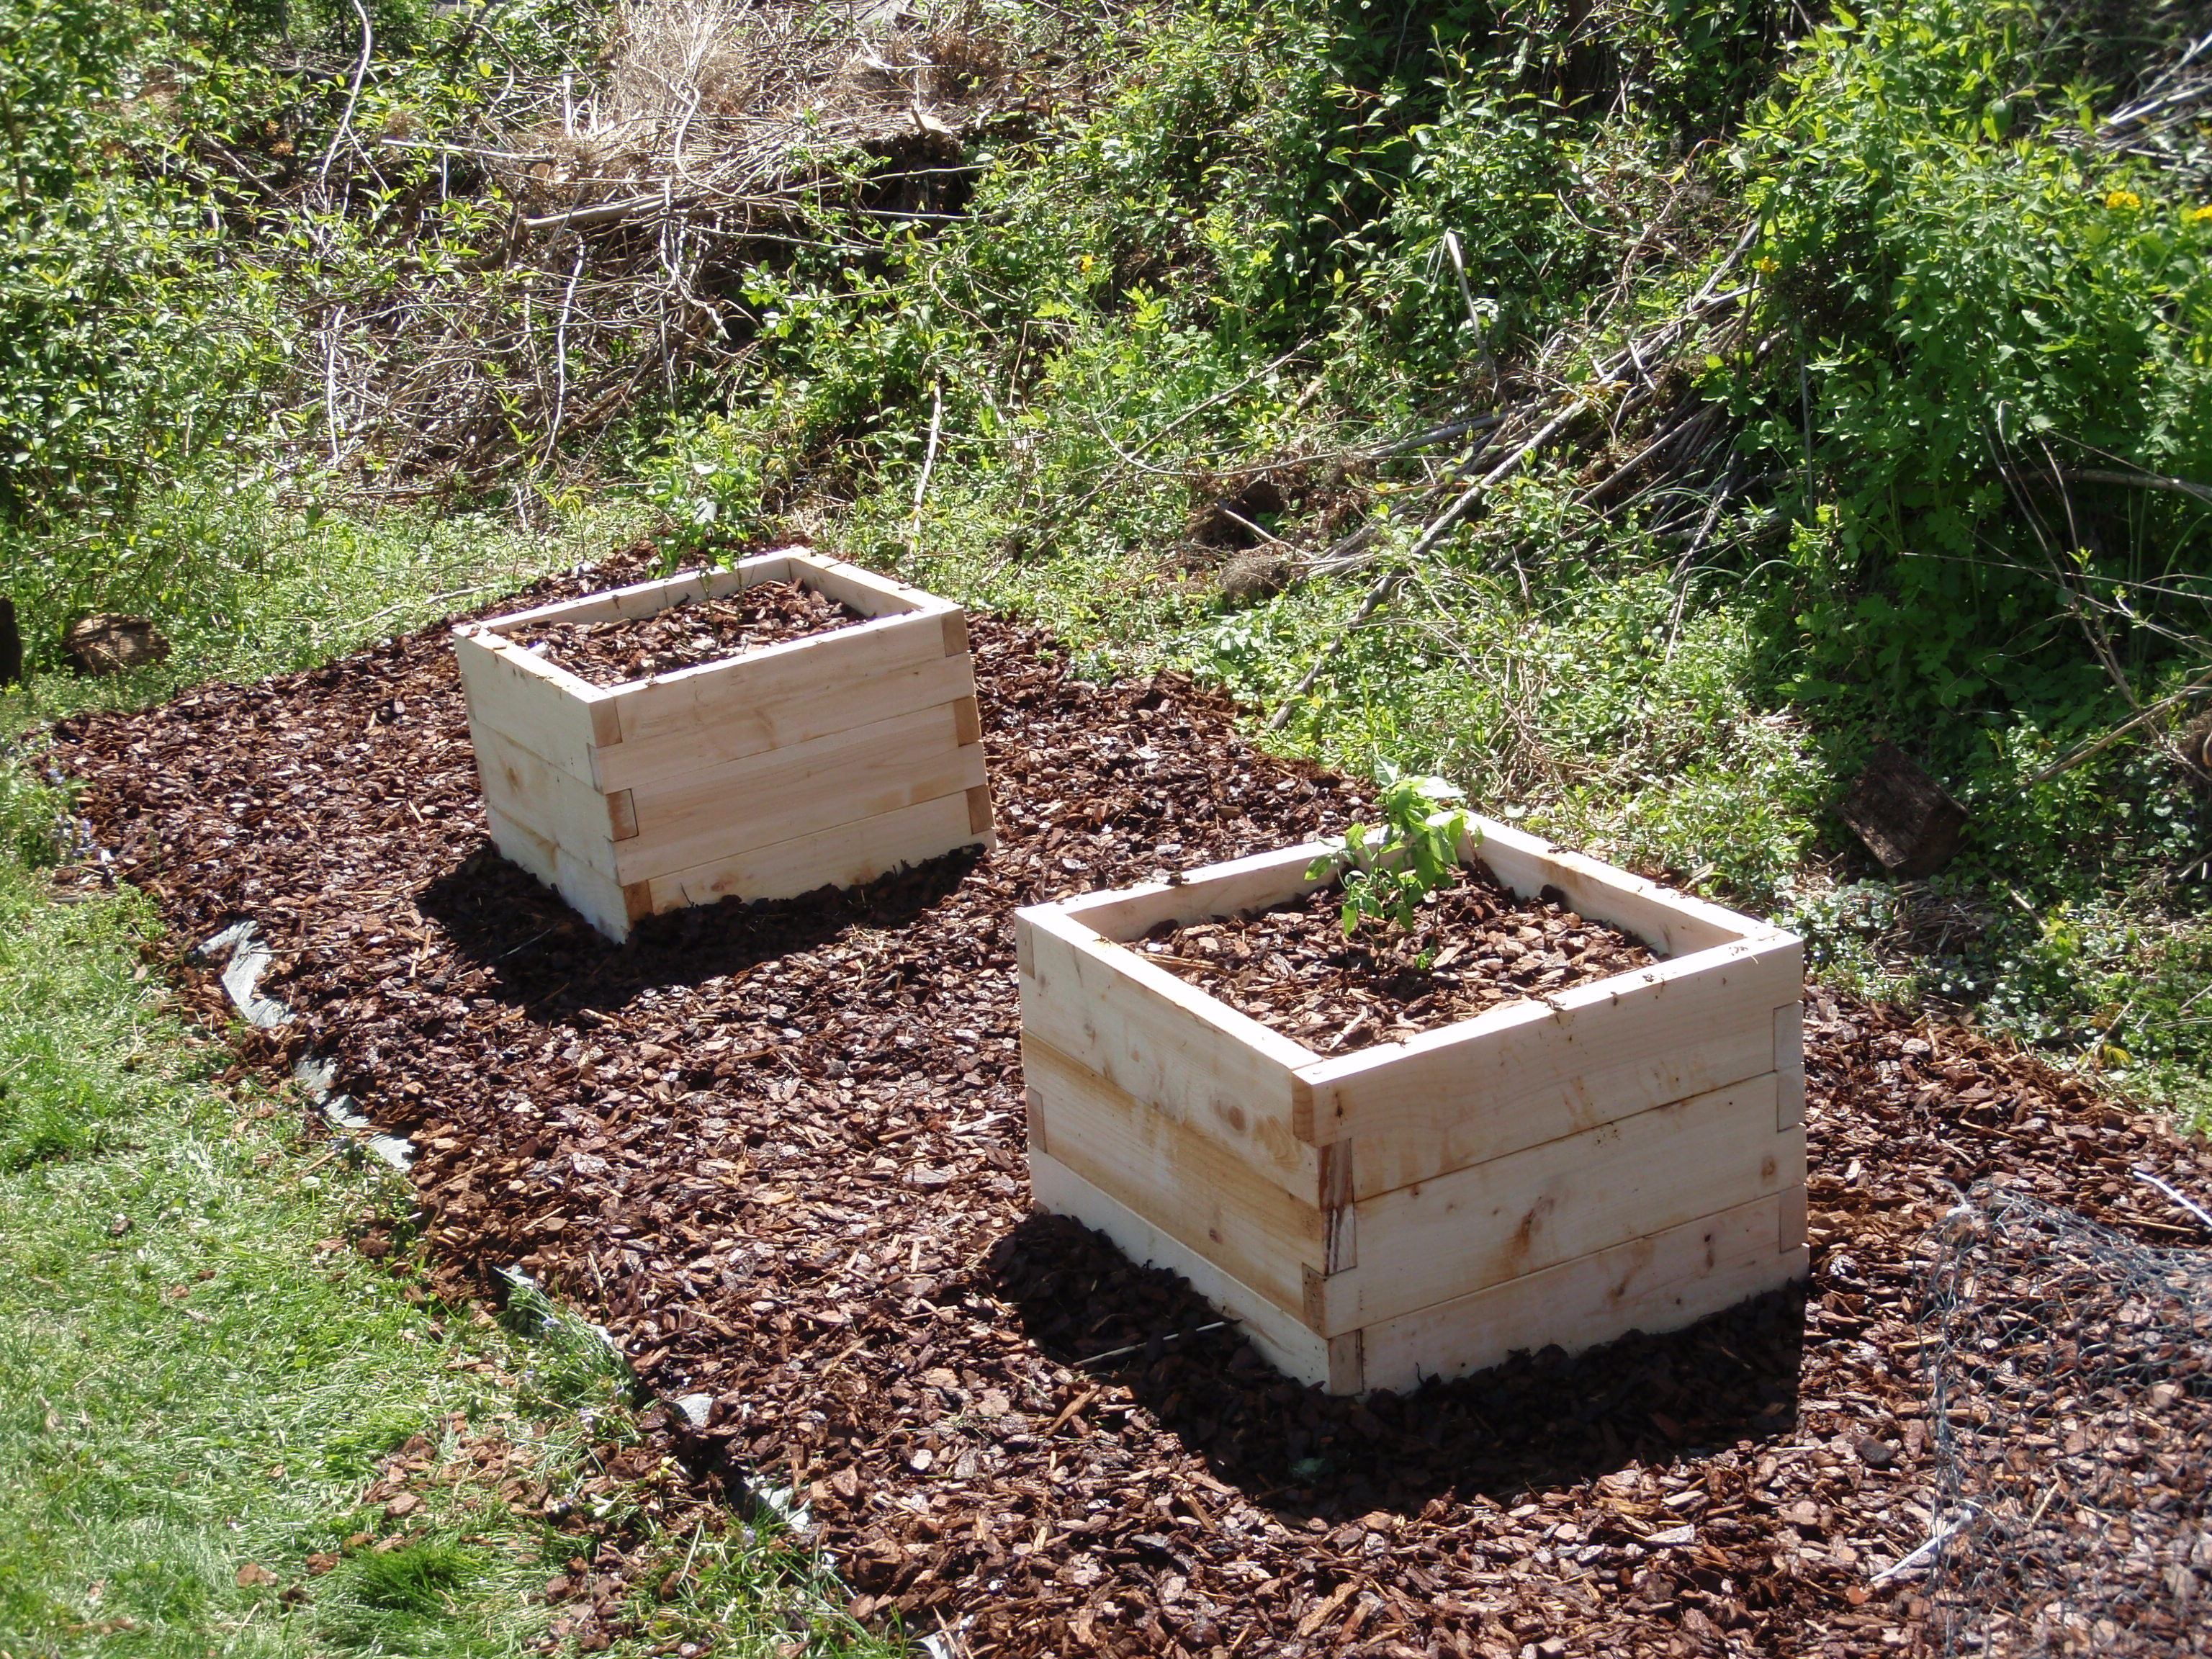 How to plant blueberry bush - I Took Advantage Of A Quiet Weekend To Go In And Plant A Couple Of Blueberry Bushes I Had Ordered From Gurneys Brigitta And Bluecrop Varieties